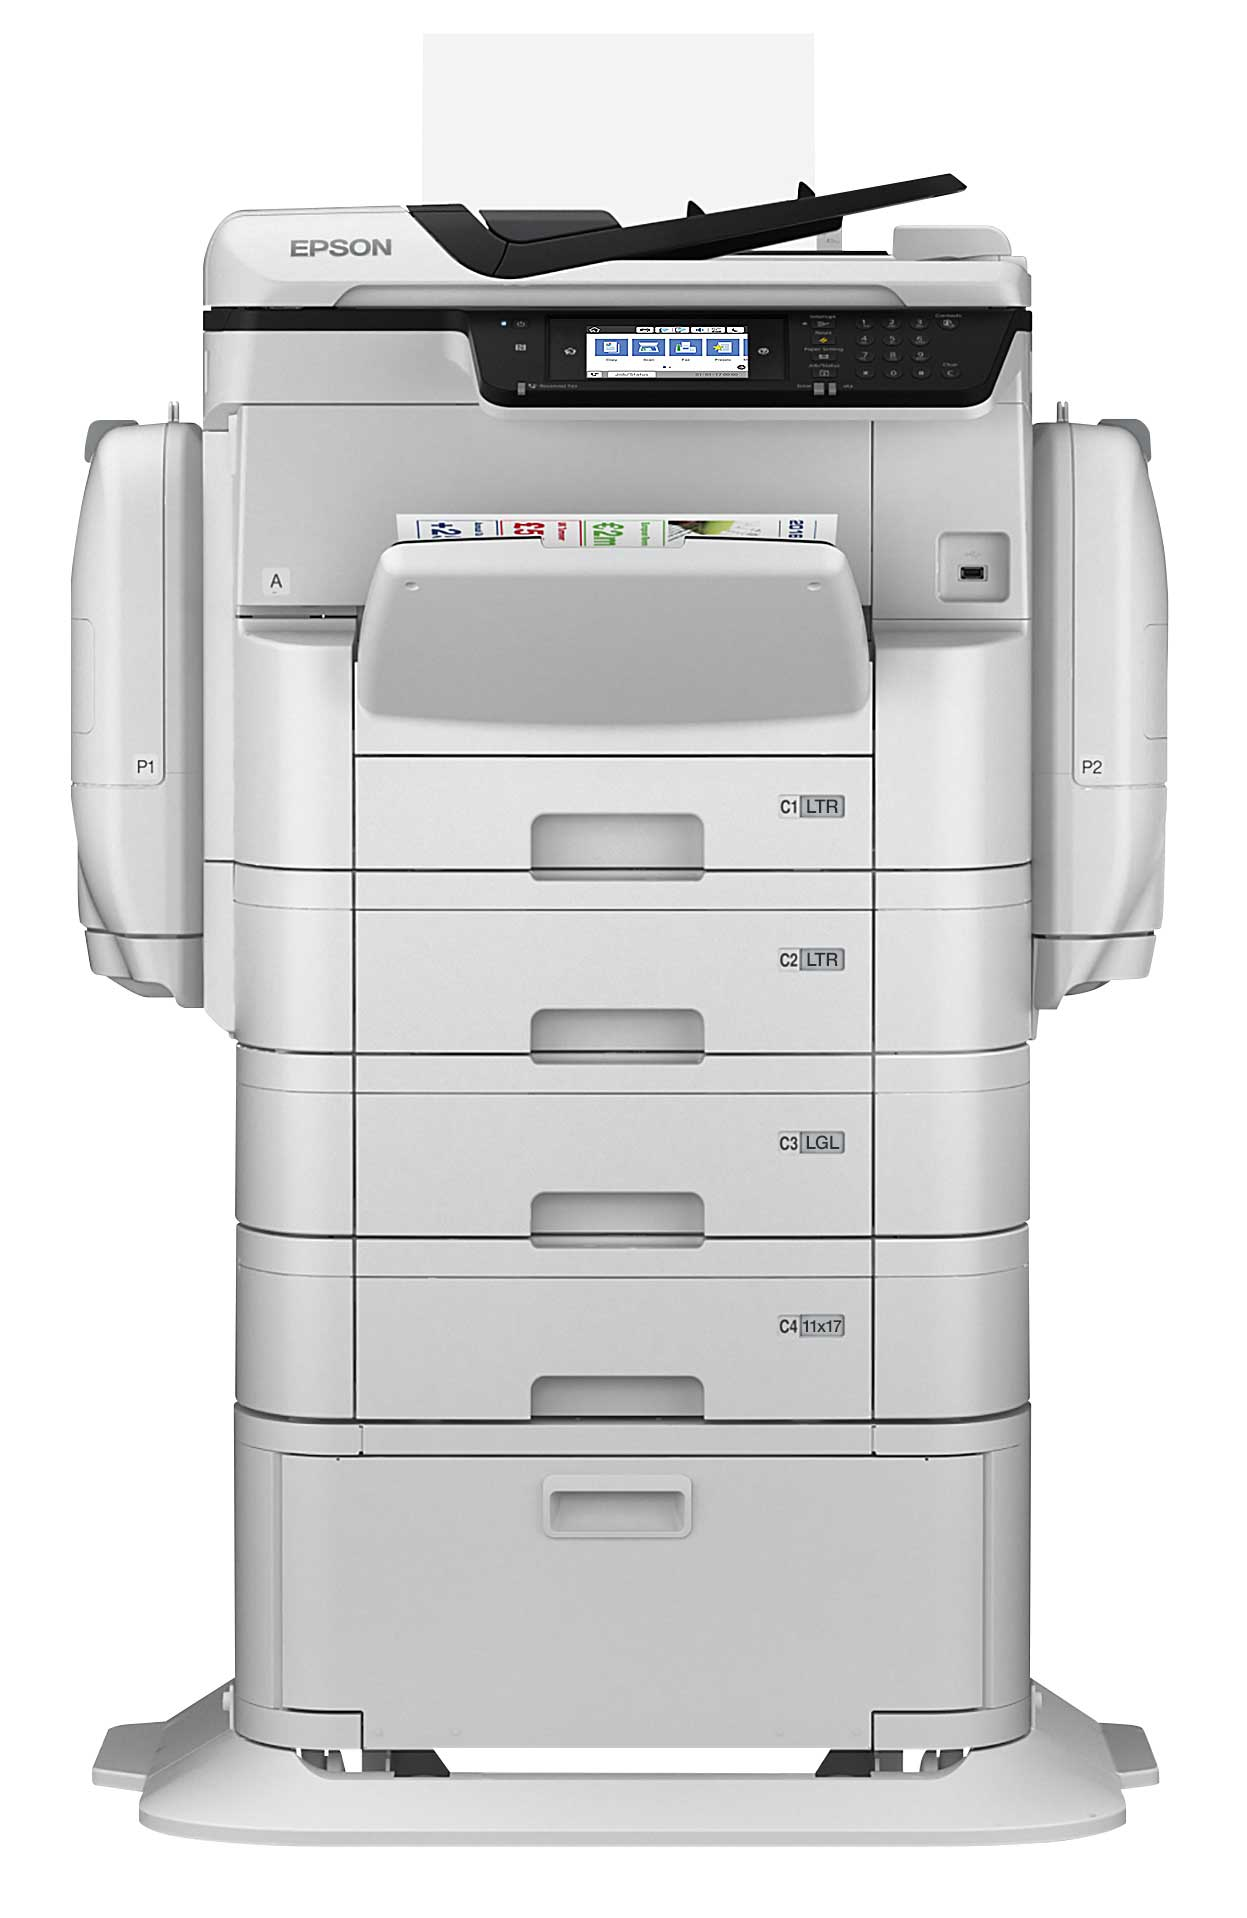 Epson WorkForce Pro WF-C869R with Optional Paper Trays and Stand